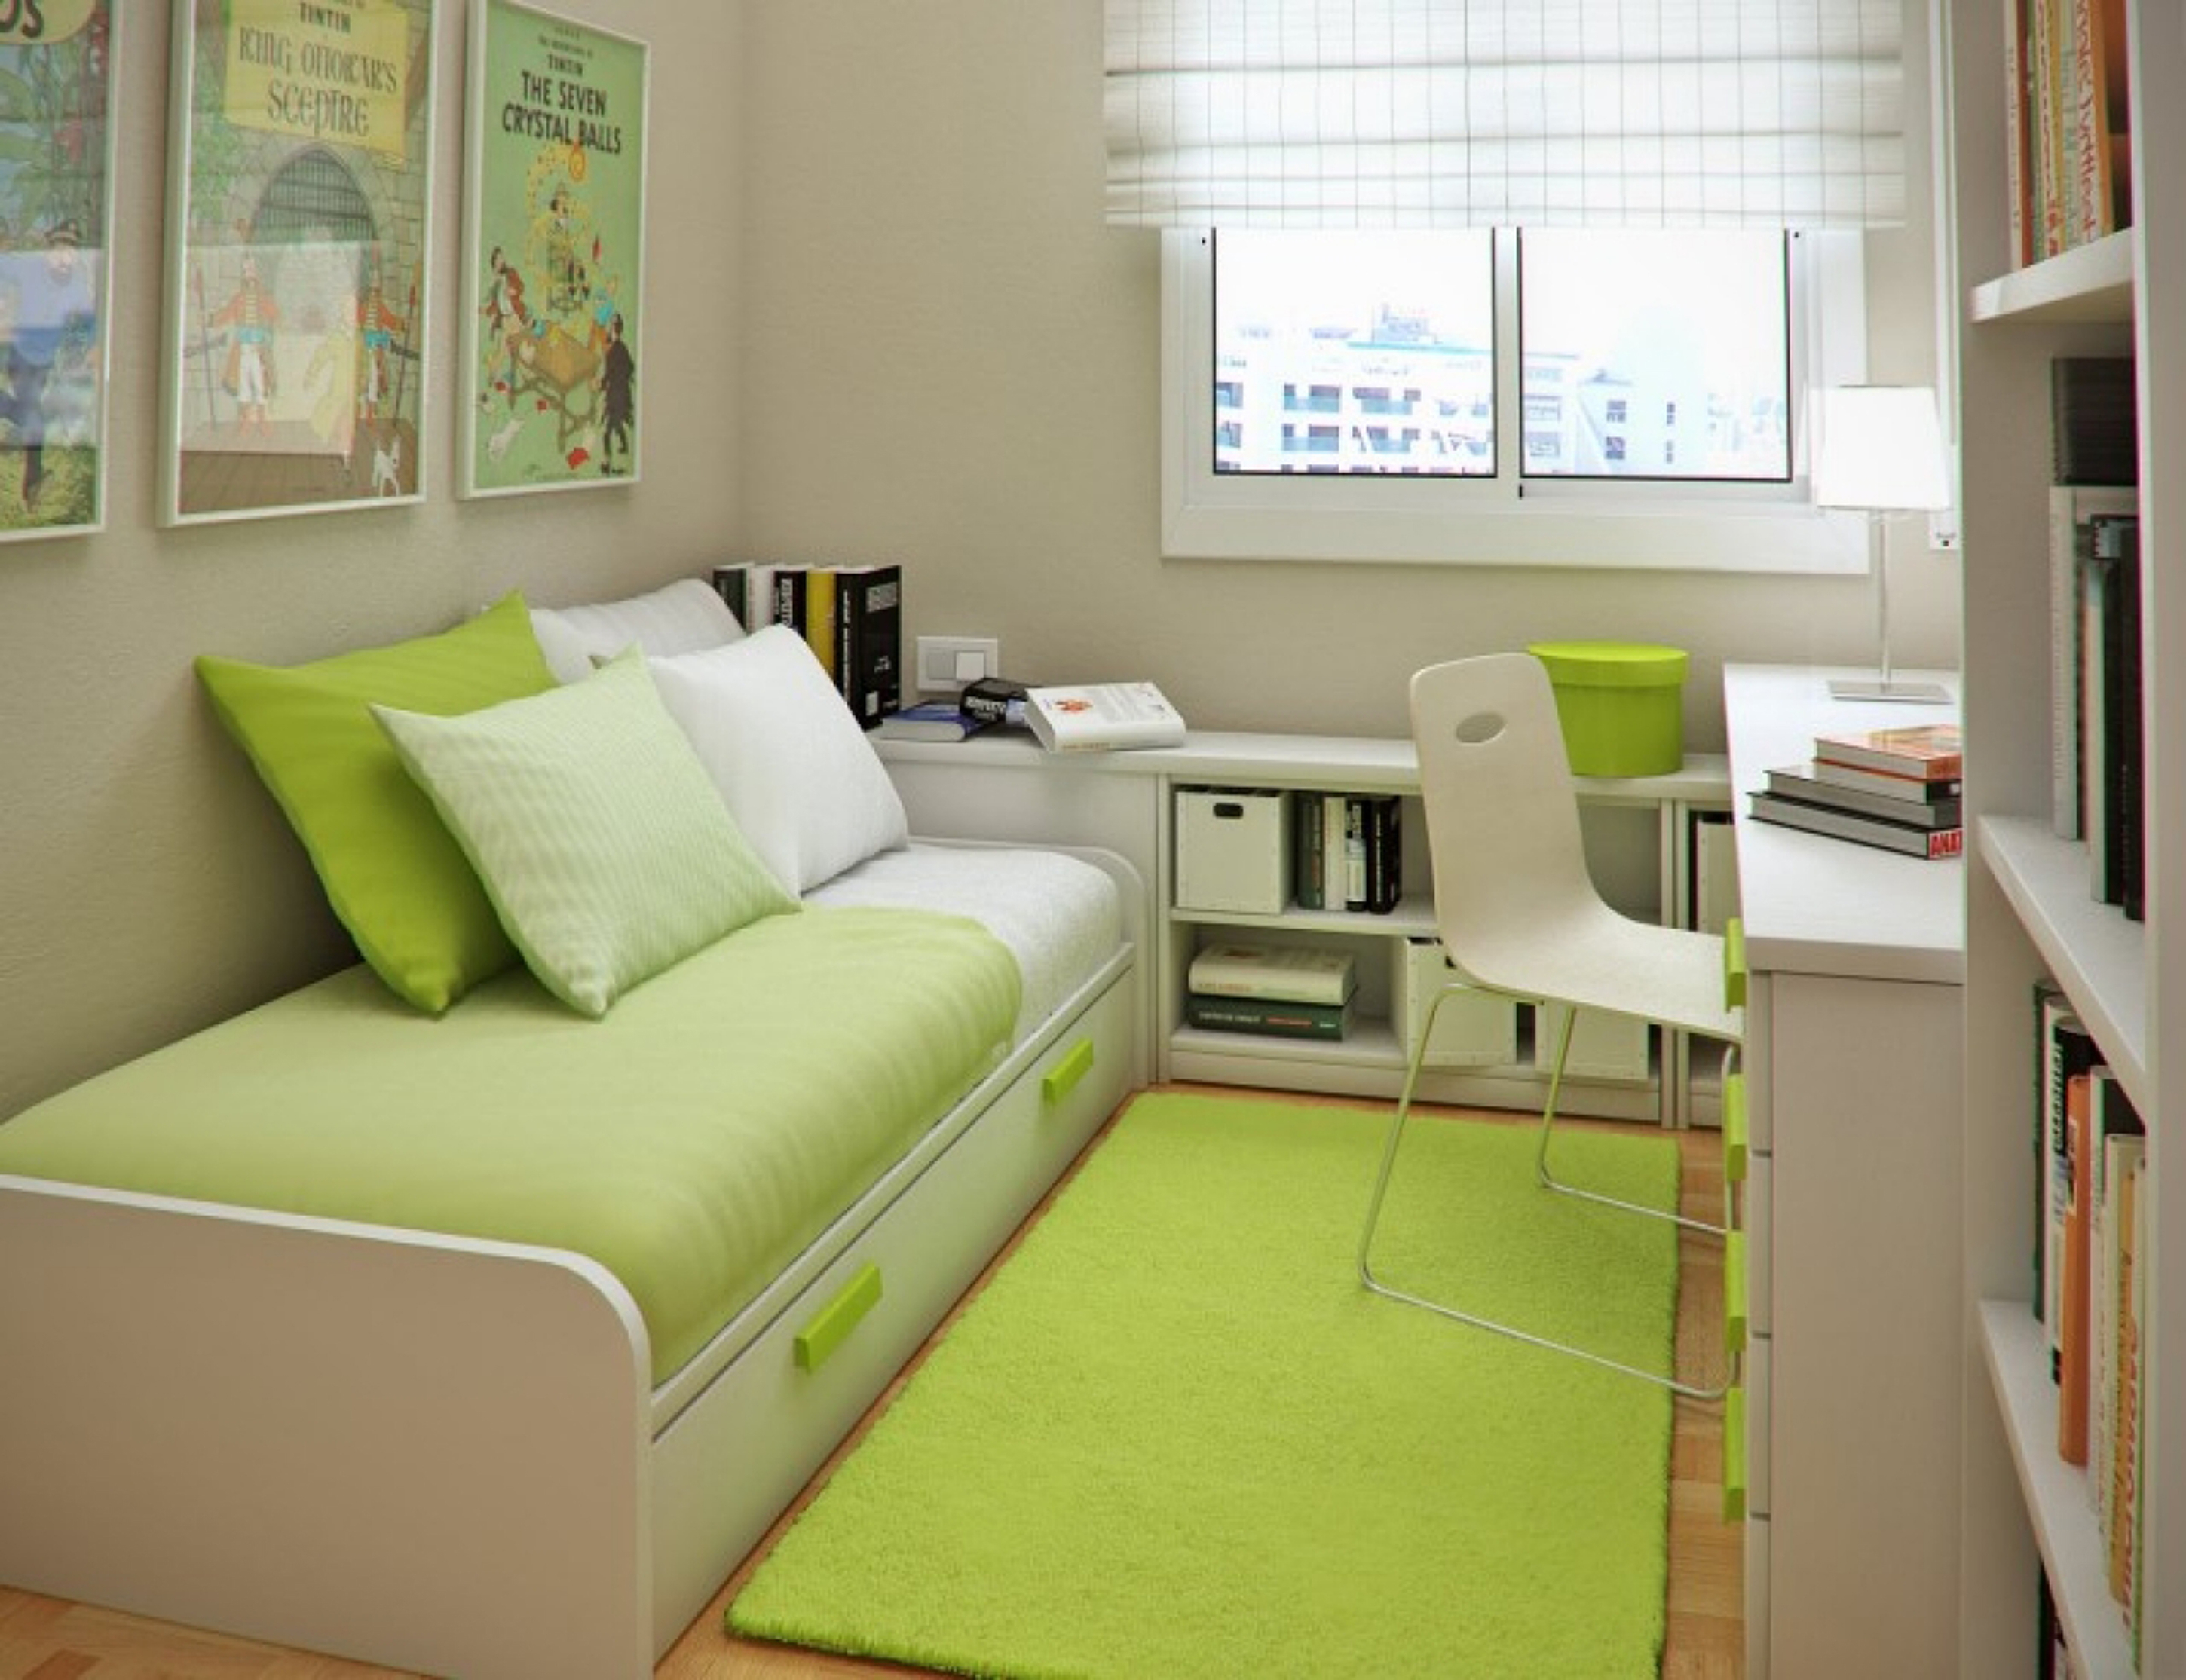 Luxury Interior Design Inspiration For Kids Room With Light Green White Pillows Light Green Rug And White Window Frame Simple Interior Design Inspiration (Image 76 of 123)